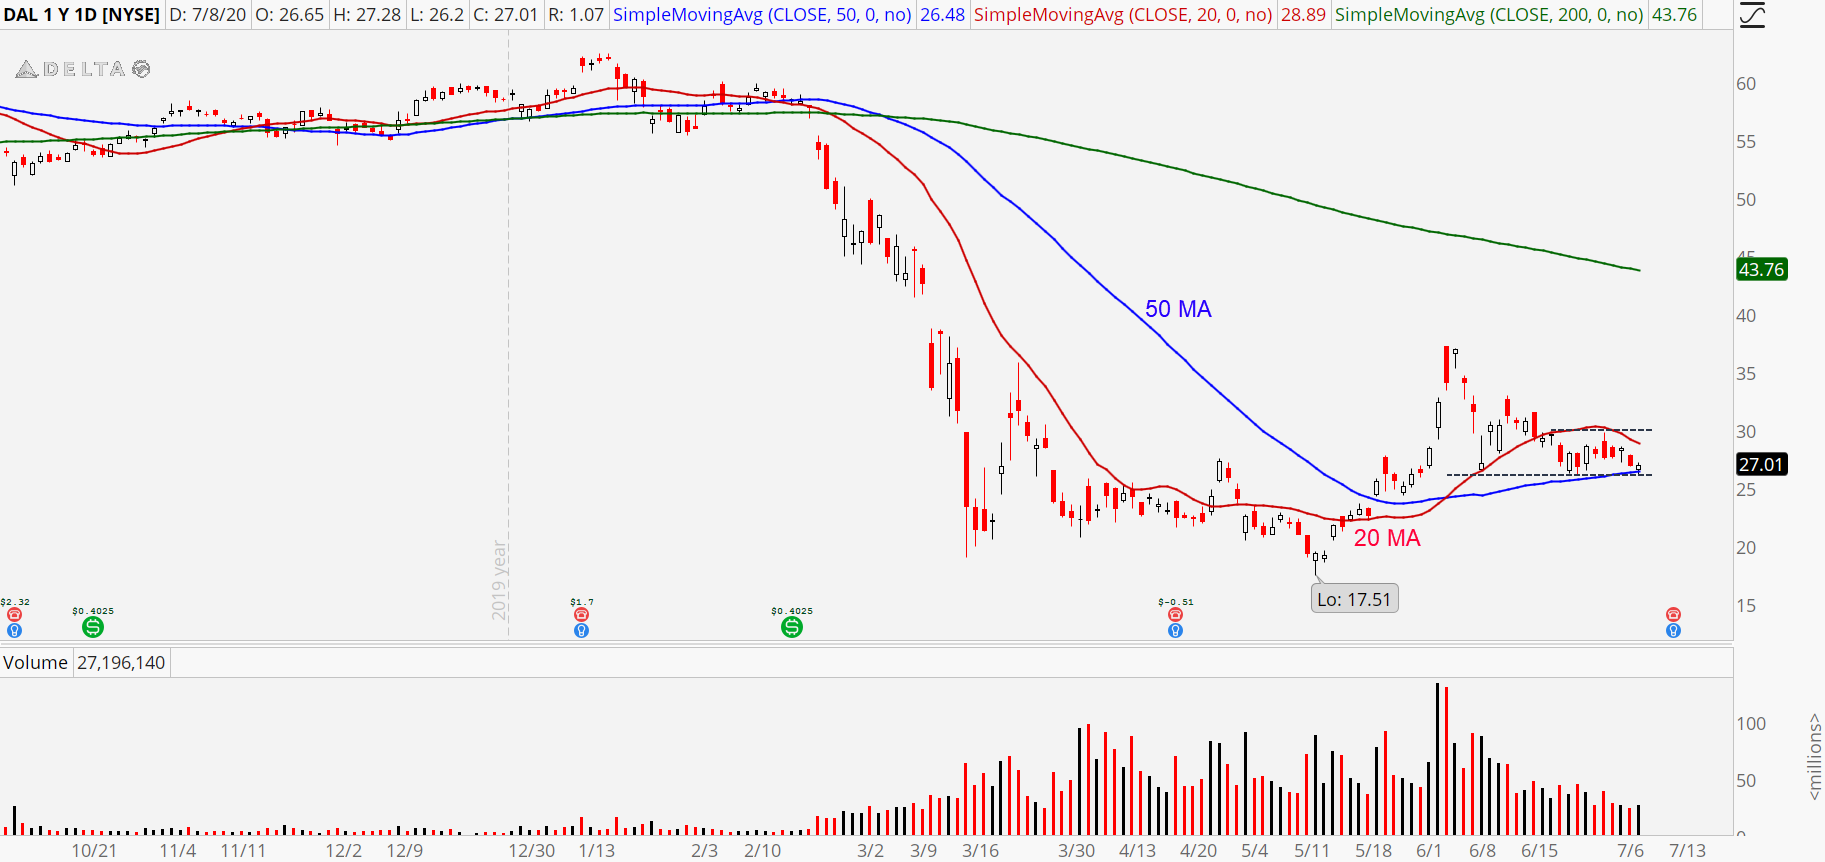 Delta (DAL) stock chart showing slowing volatility